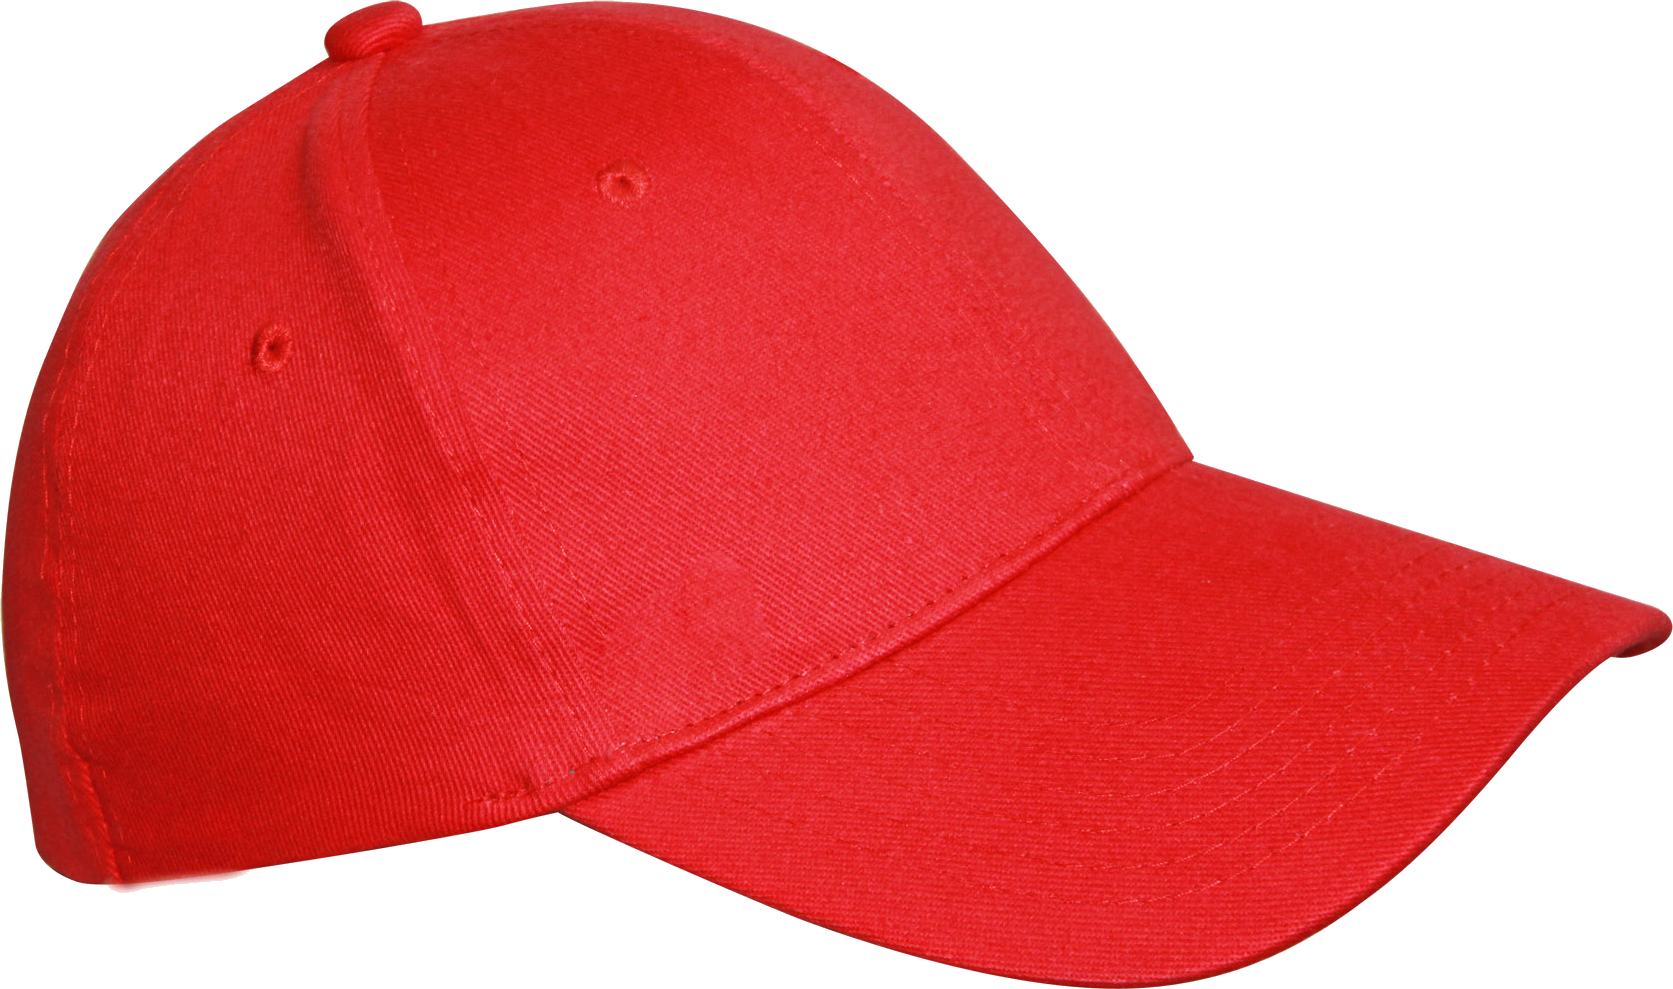 Featuddrced Face Cotton Red Cap Png Image Cap Red Png